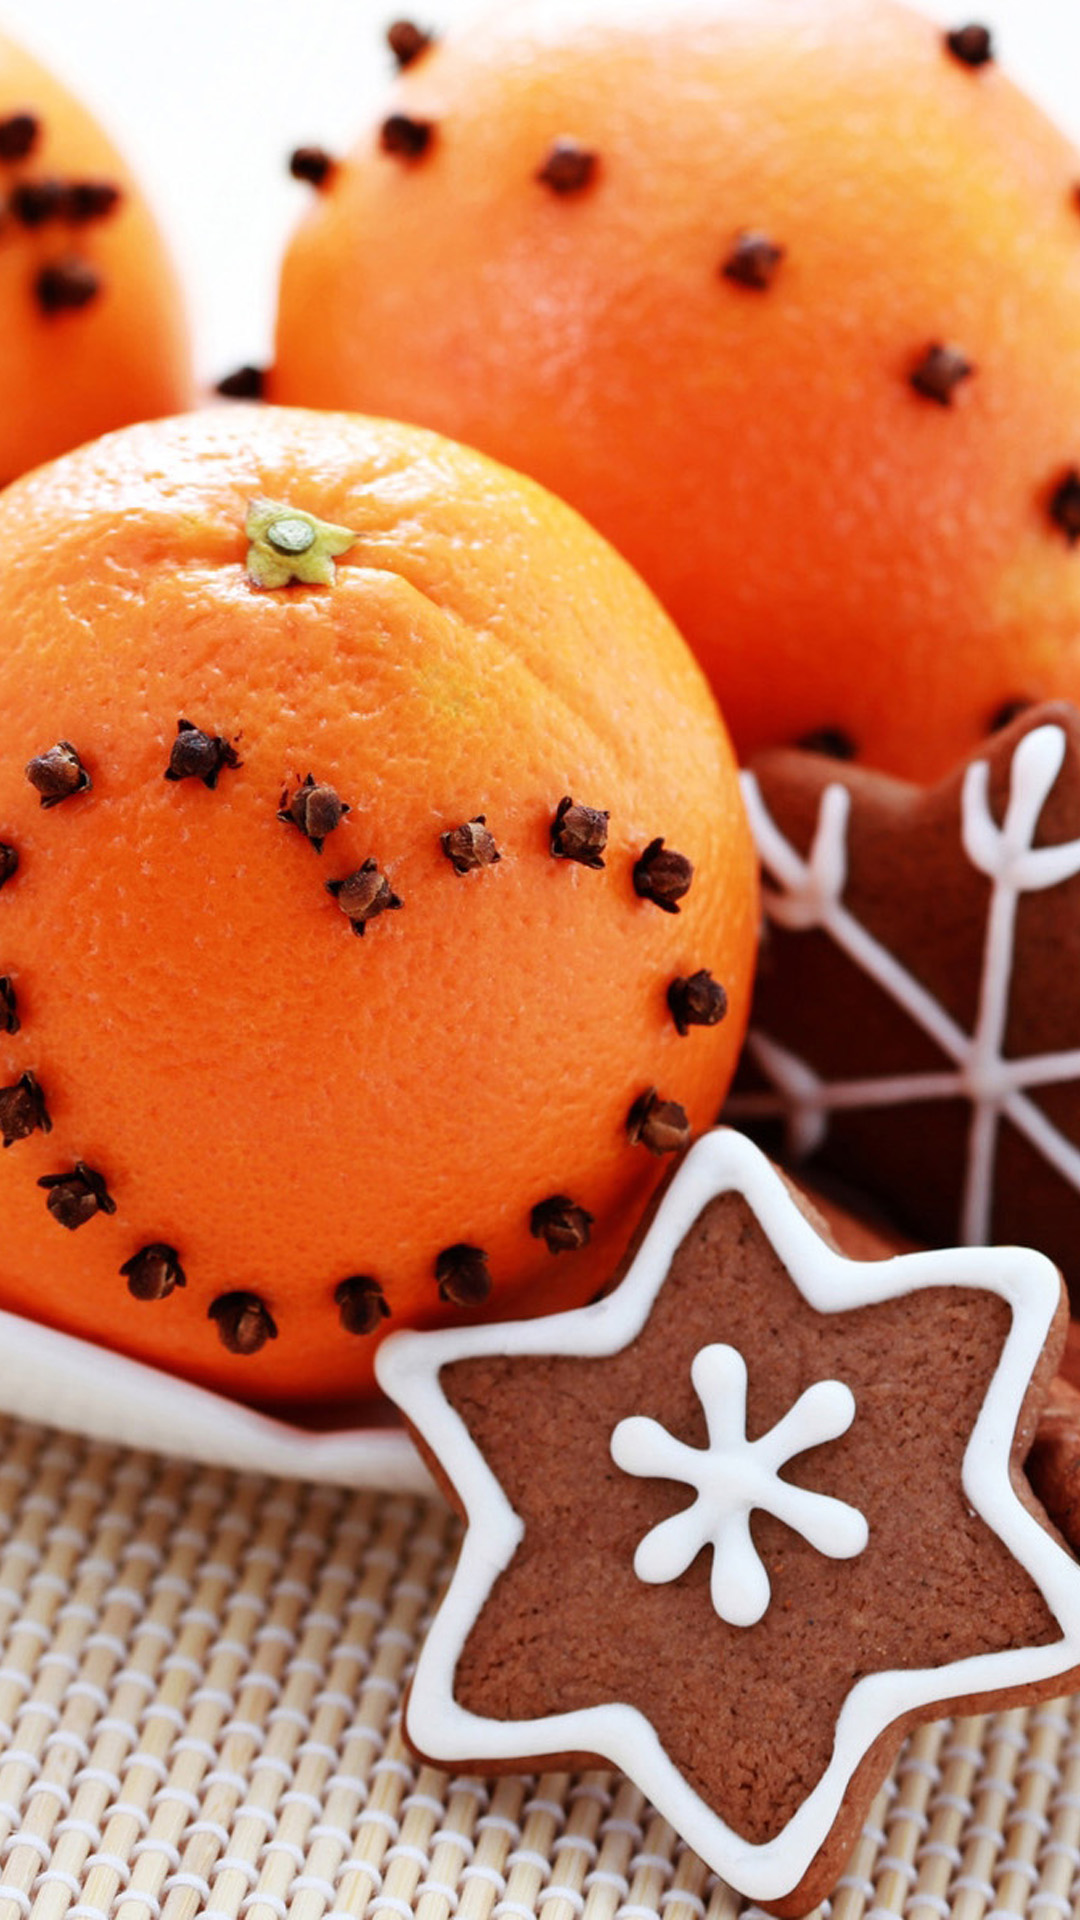 Oranges Gingerbread Christmas Food Android Wallpaper 1080x1920